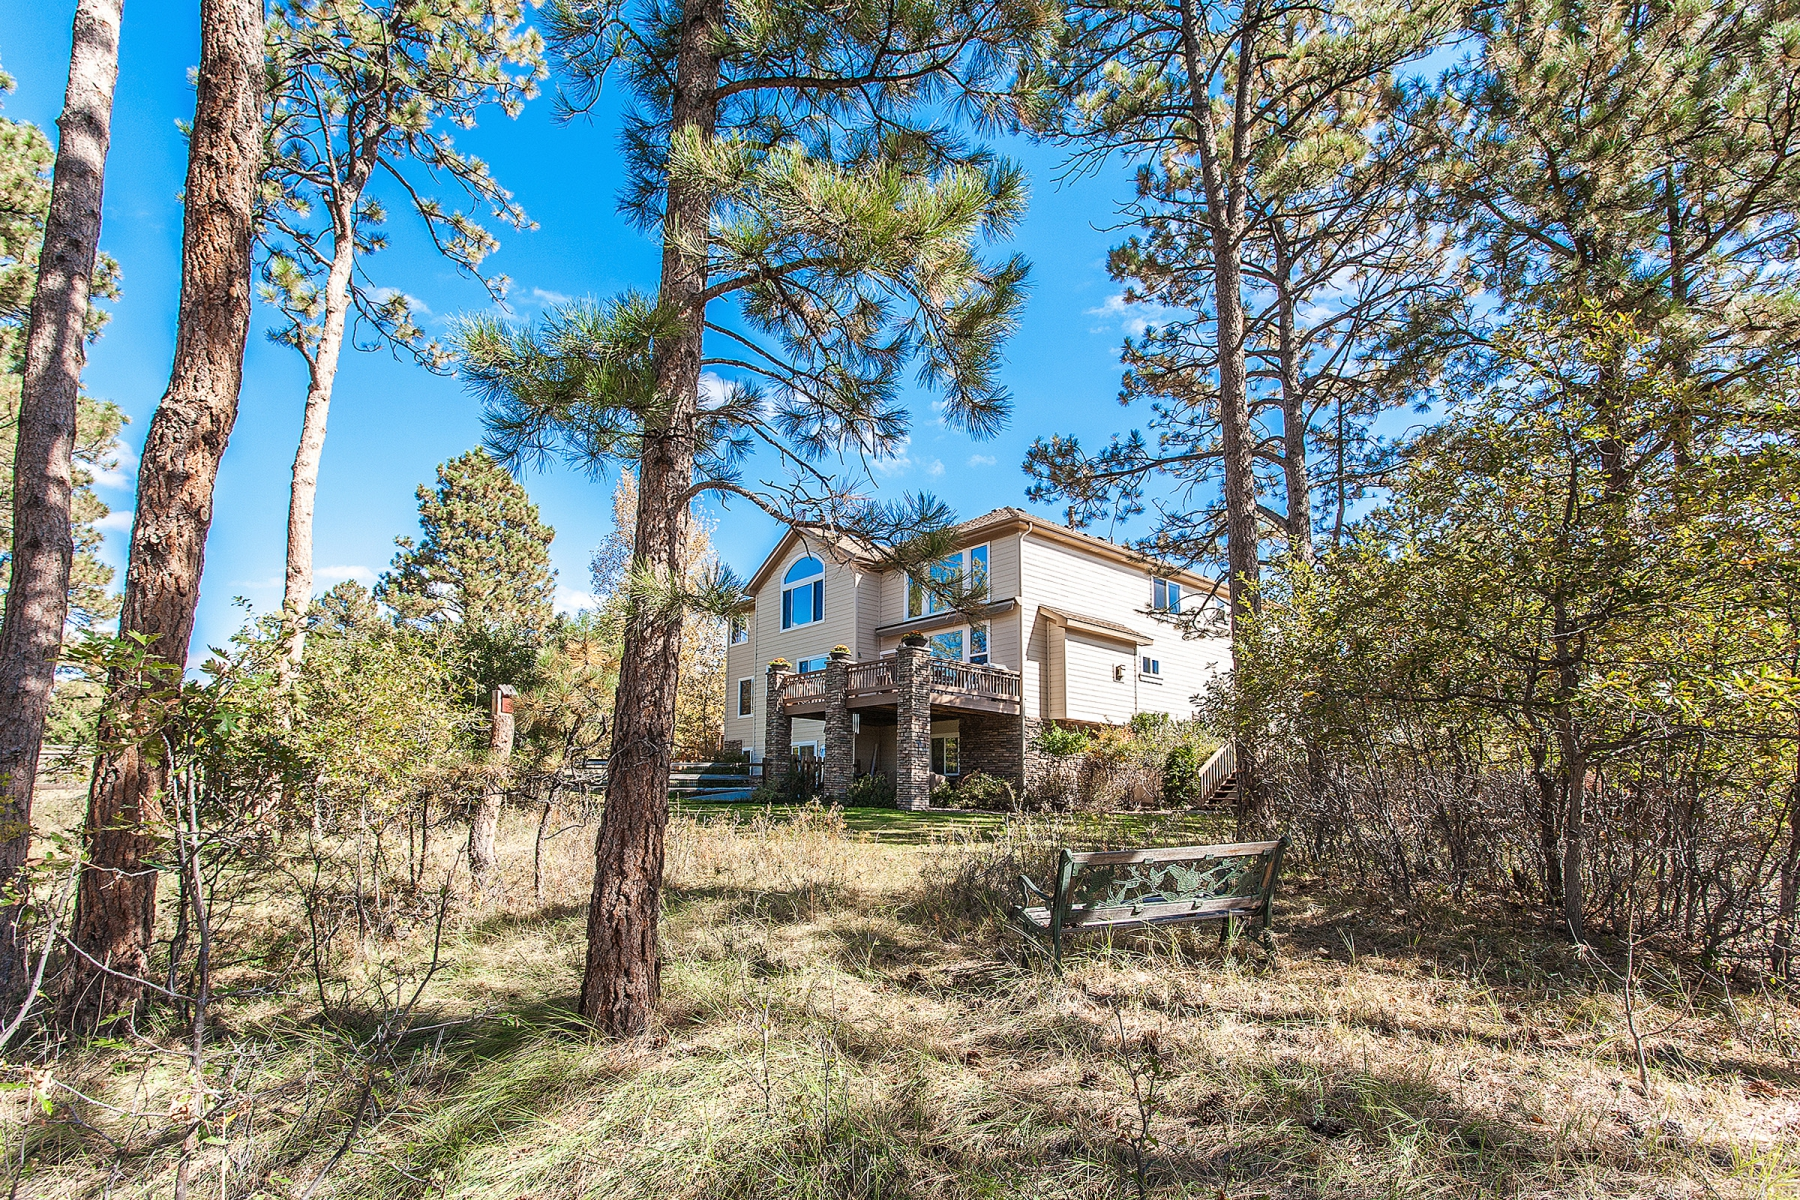 Single Family Home for Sale at Peaceful Timbers retreat backing to wonderful wooded open space 5439 Fox Sparrow Road Parker, Colorado 80134 United States